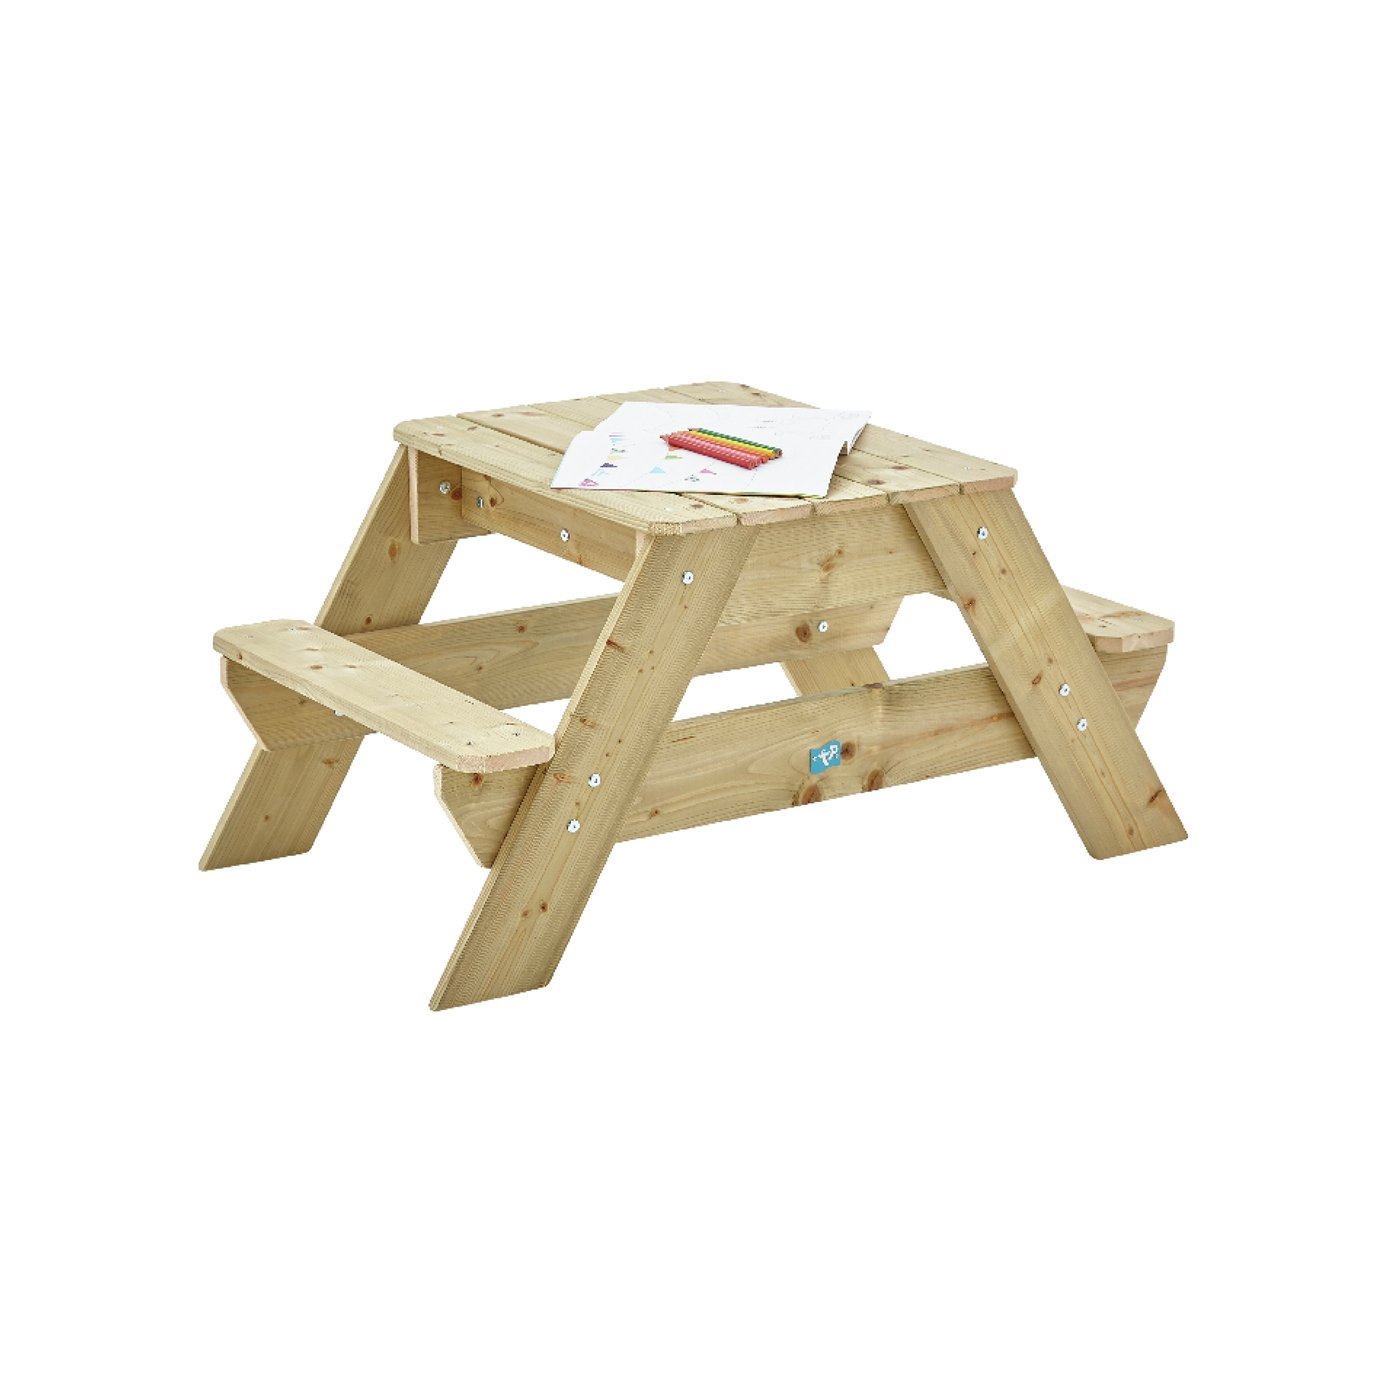 Superb Tp Early Fun Picnic Table Sandpit 8056221 Argos Price Pabps2019 Chair Design Images Pabps2019Com